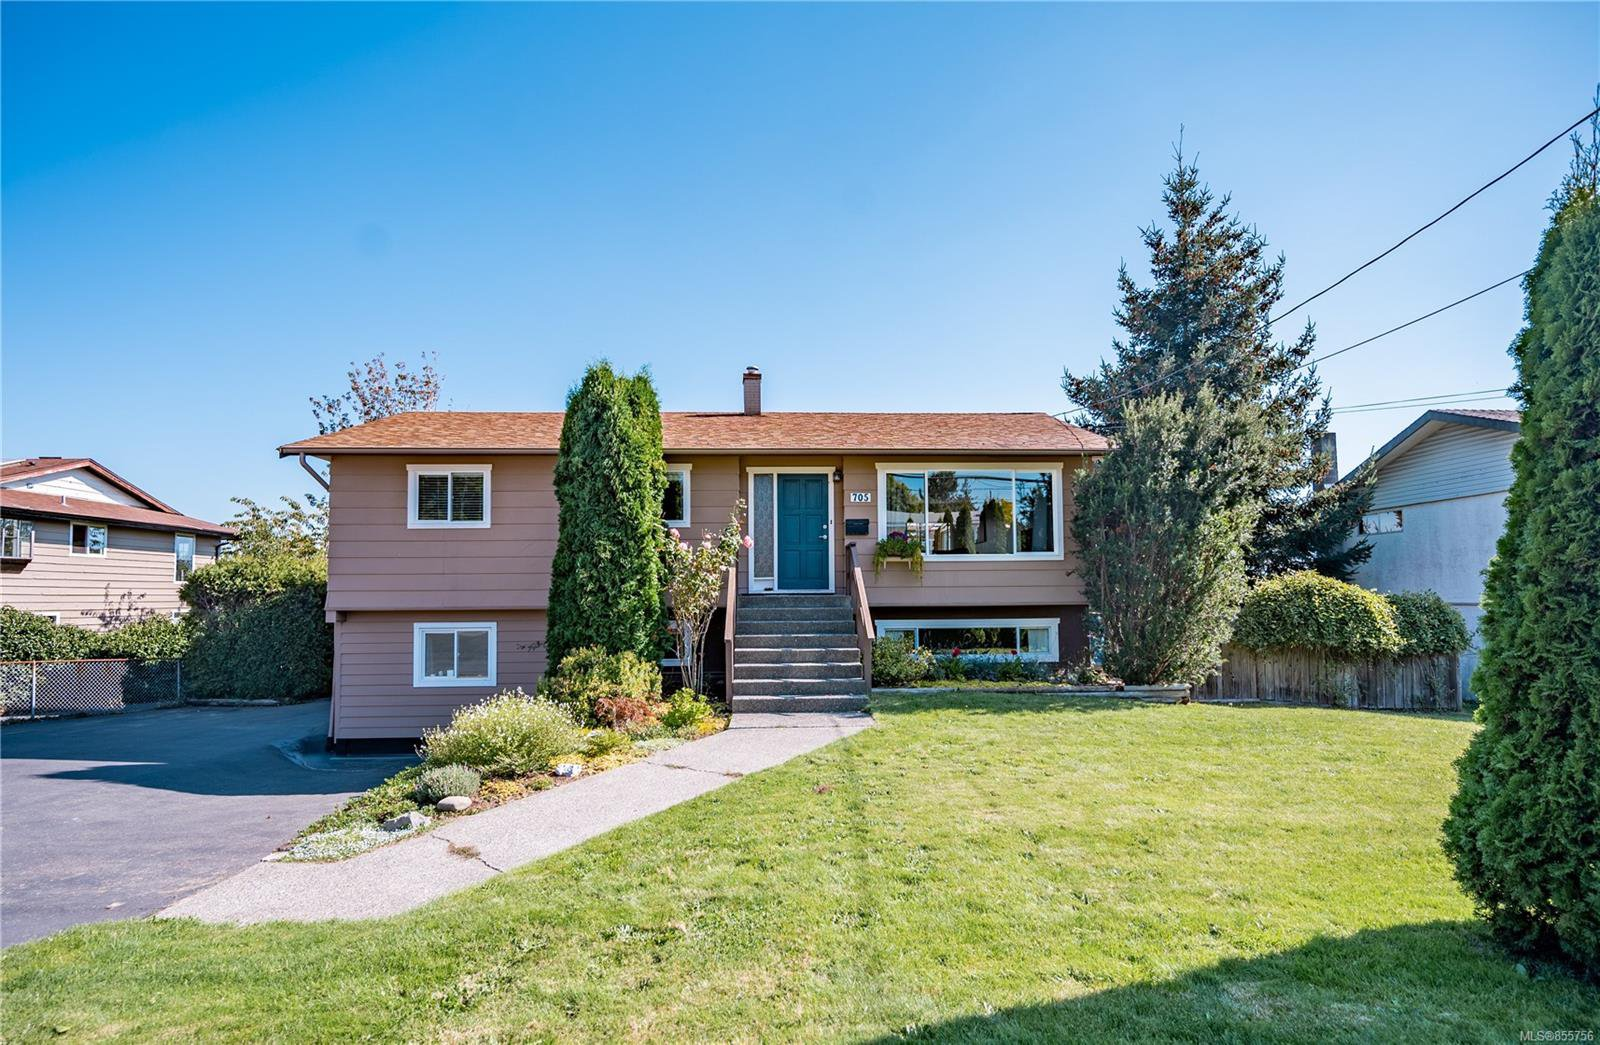 Main Photo: 705 S Alder St in : CR Campbell River Central House for sale (Campbell River)  : MLS®# 855756